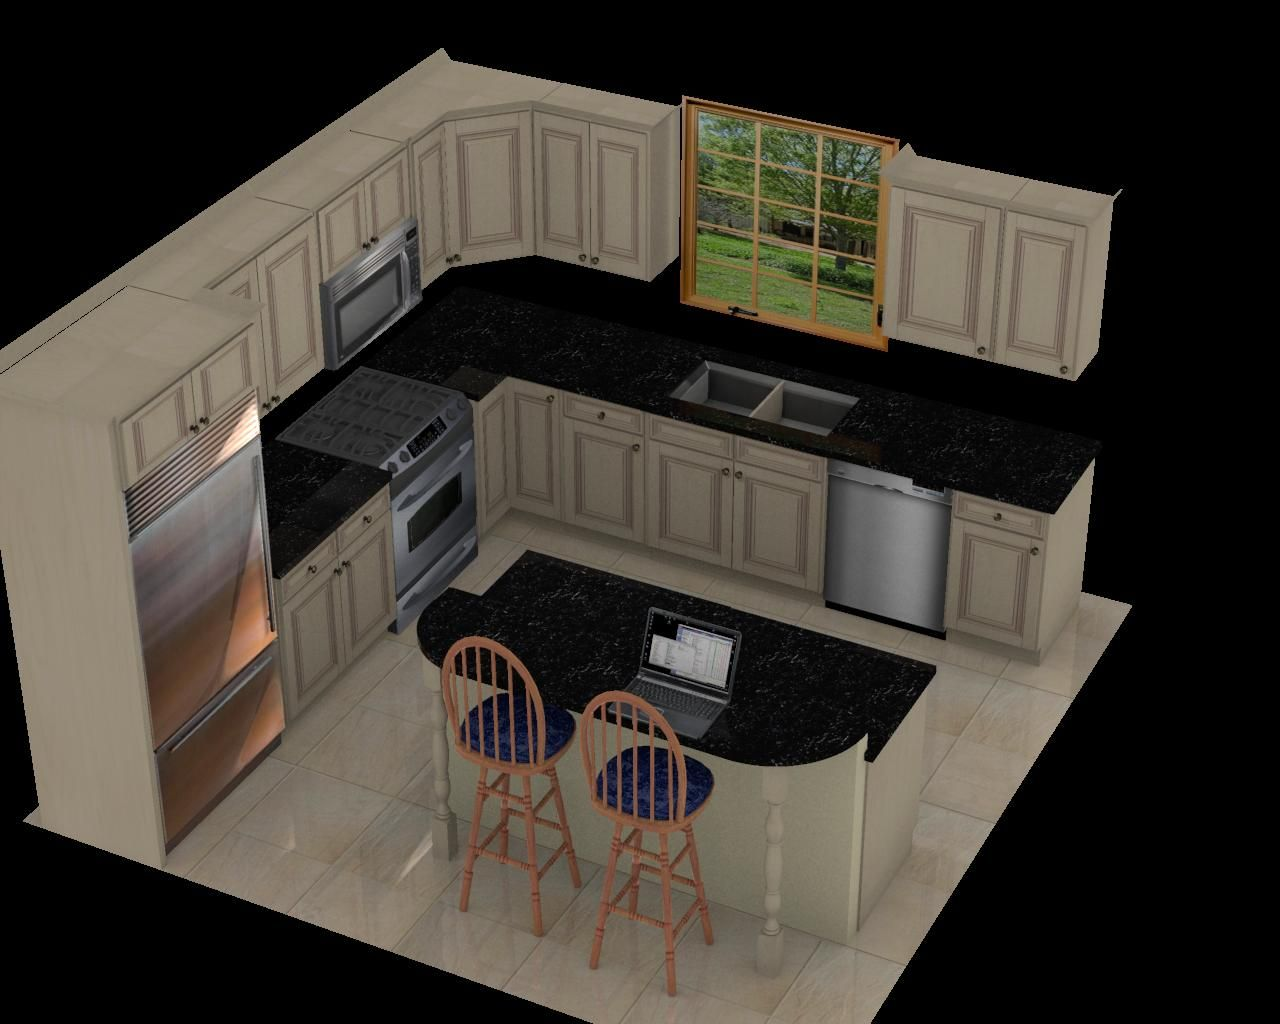 kitchen design 12 x 16 luxury 12x12 kitchen layout with island 51 for with 12x12 433